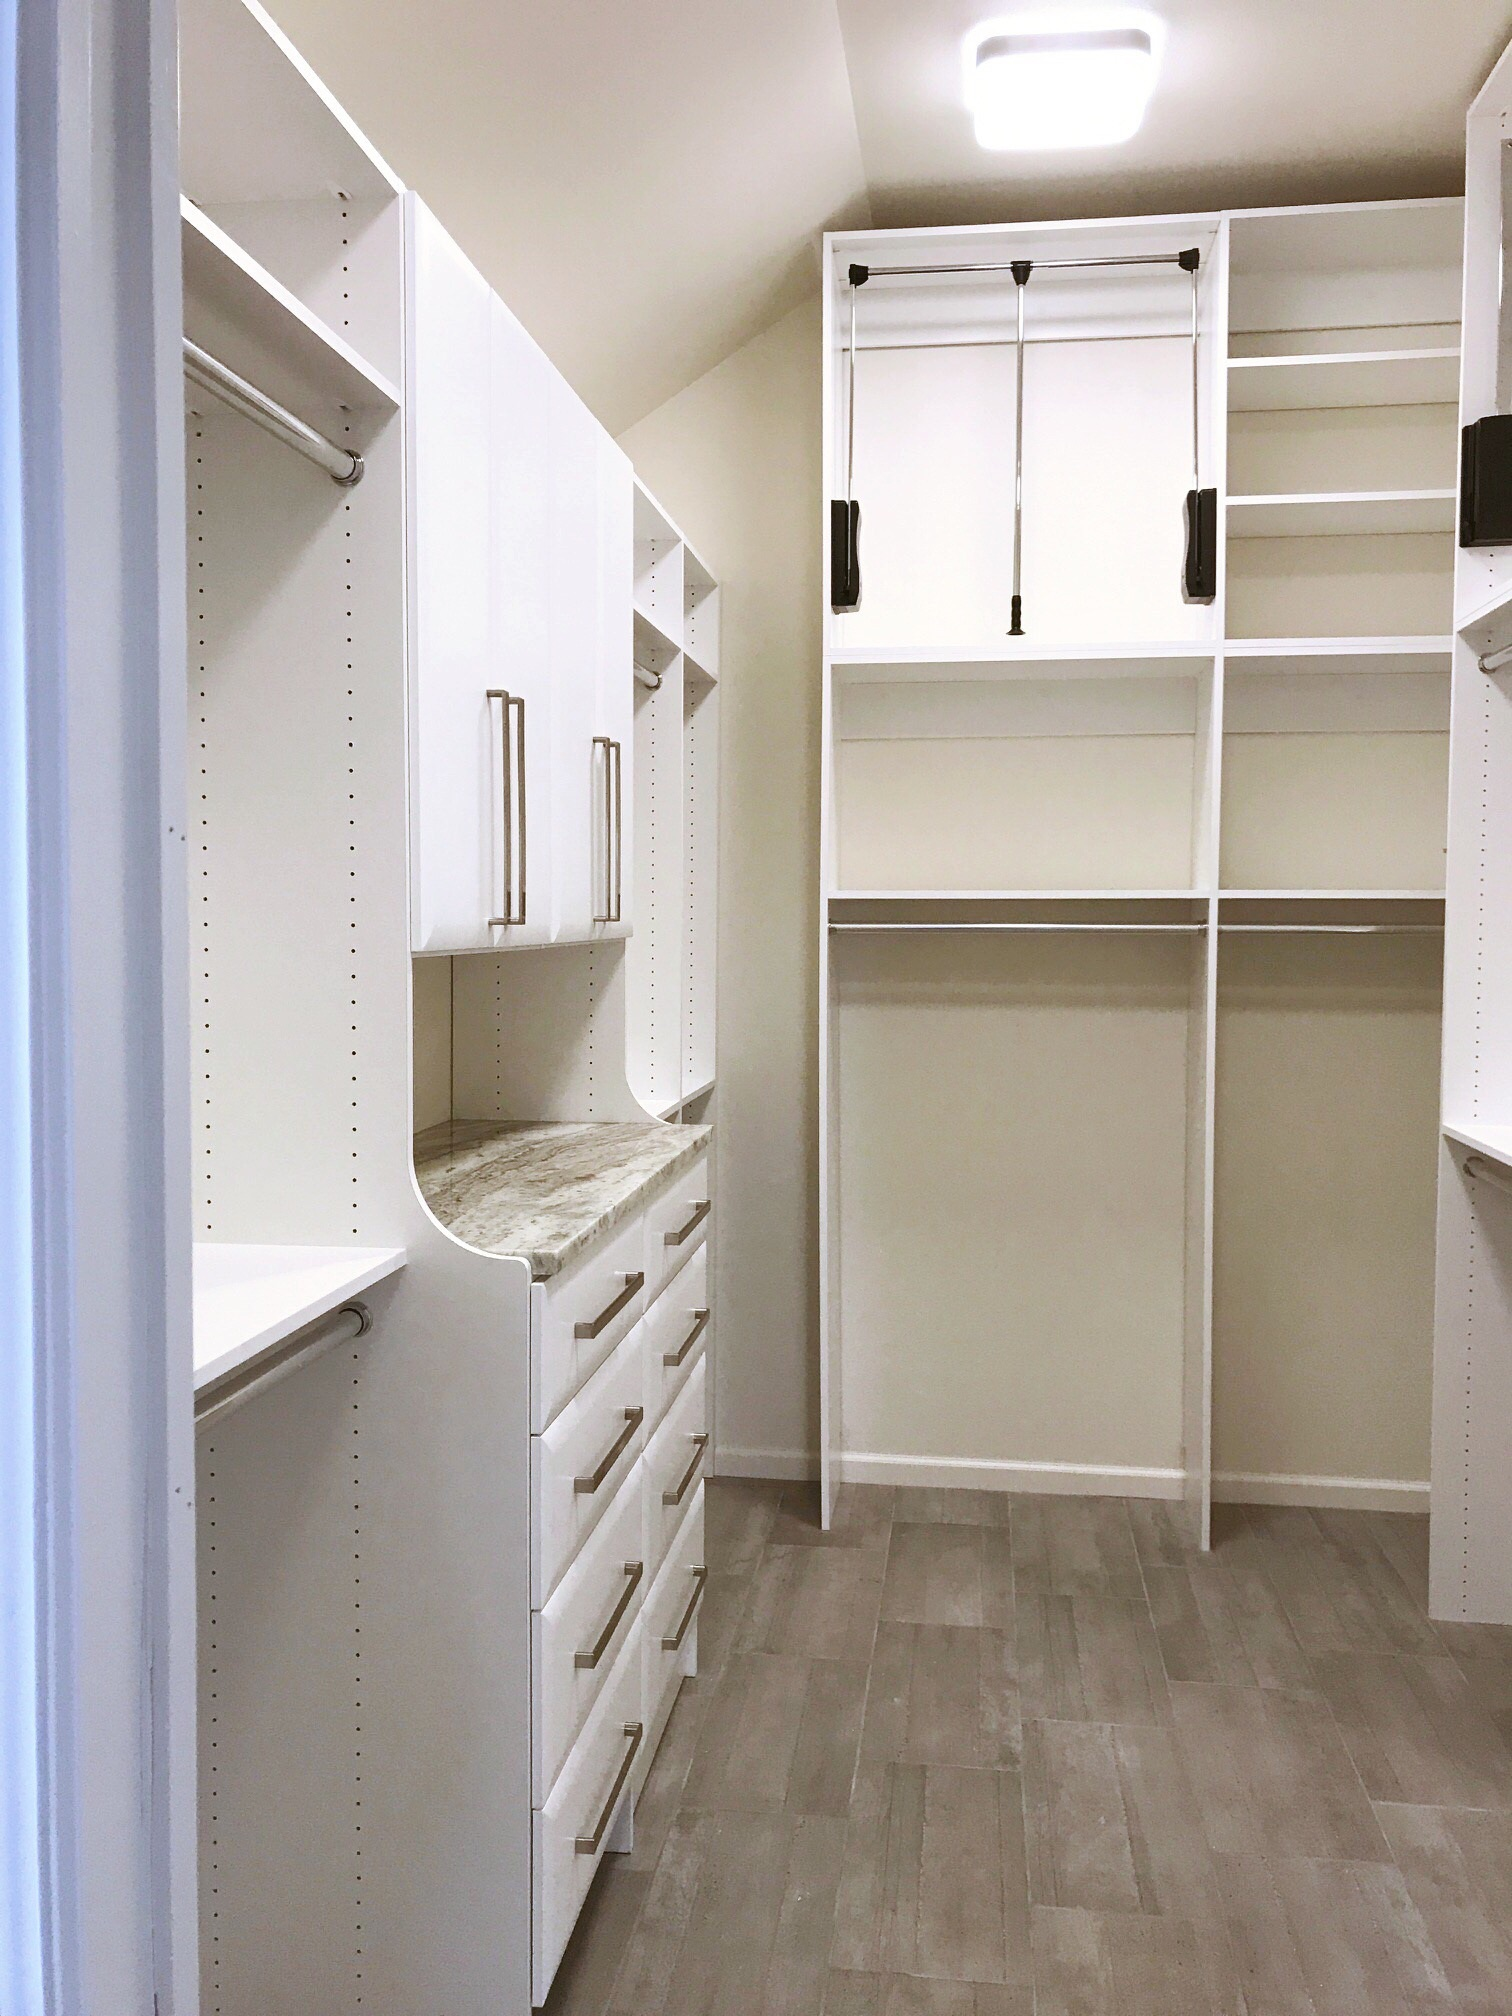 This custom closet organizer by Closets of Tulsa features a built-in drawer system.  Call now  for your FREE consultation and 3-D closet design:  918.609.0214